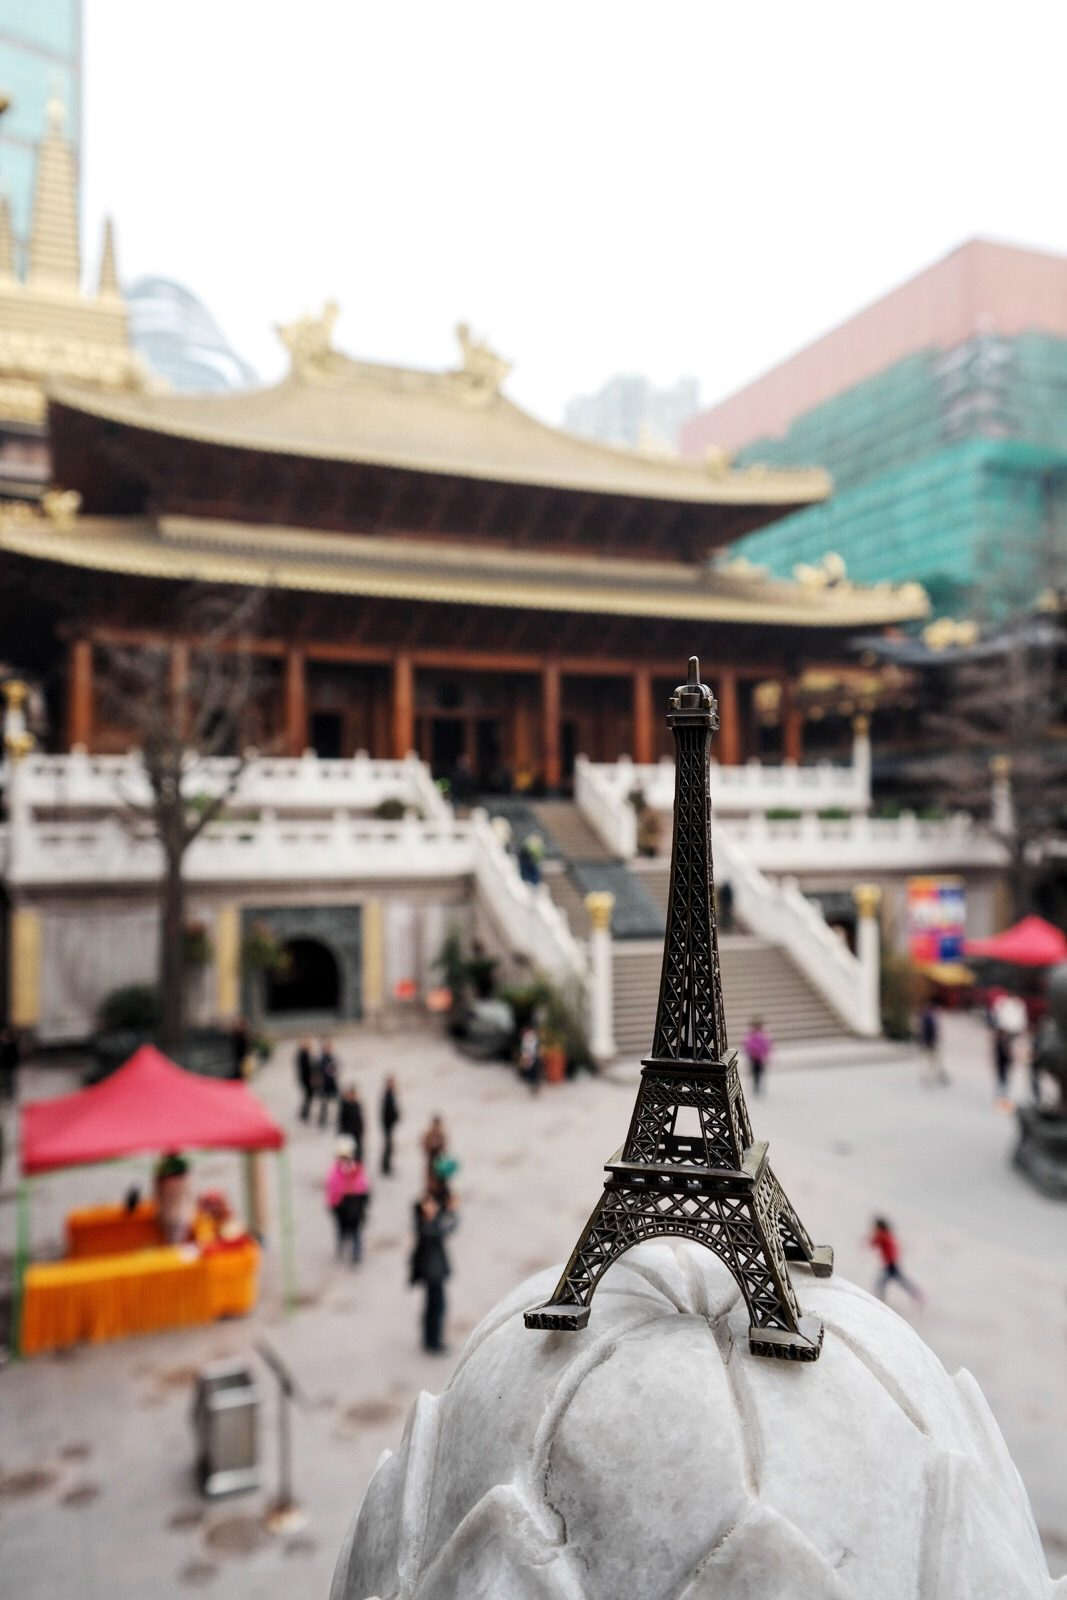 Eiffel Tower and Jing an Temple Shanghai west nanjing road buddhist Temple of peace and tranquility tourisme photo usofparis travel blog